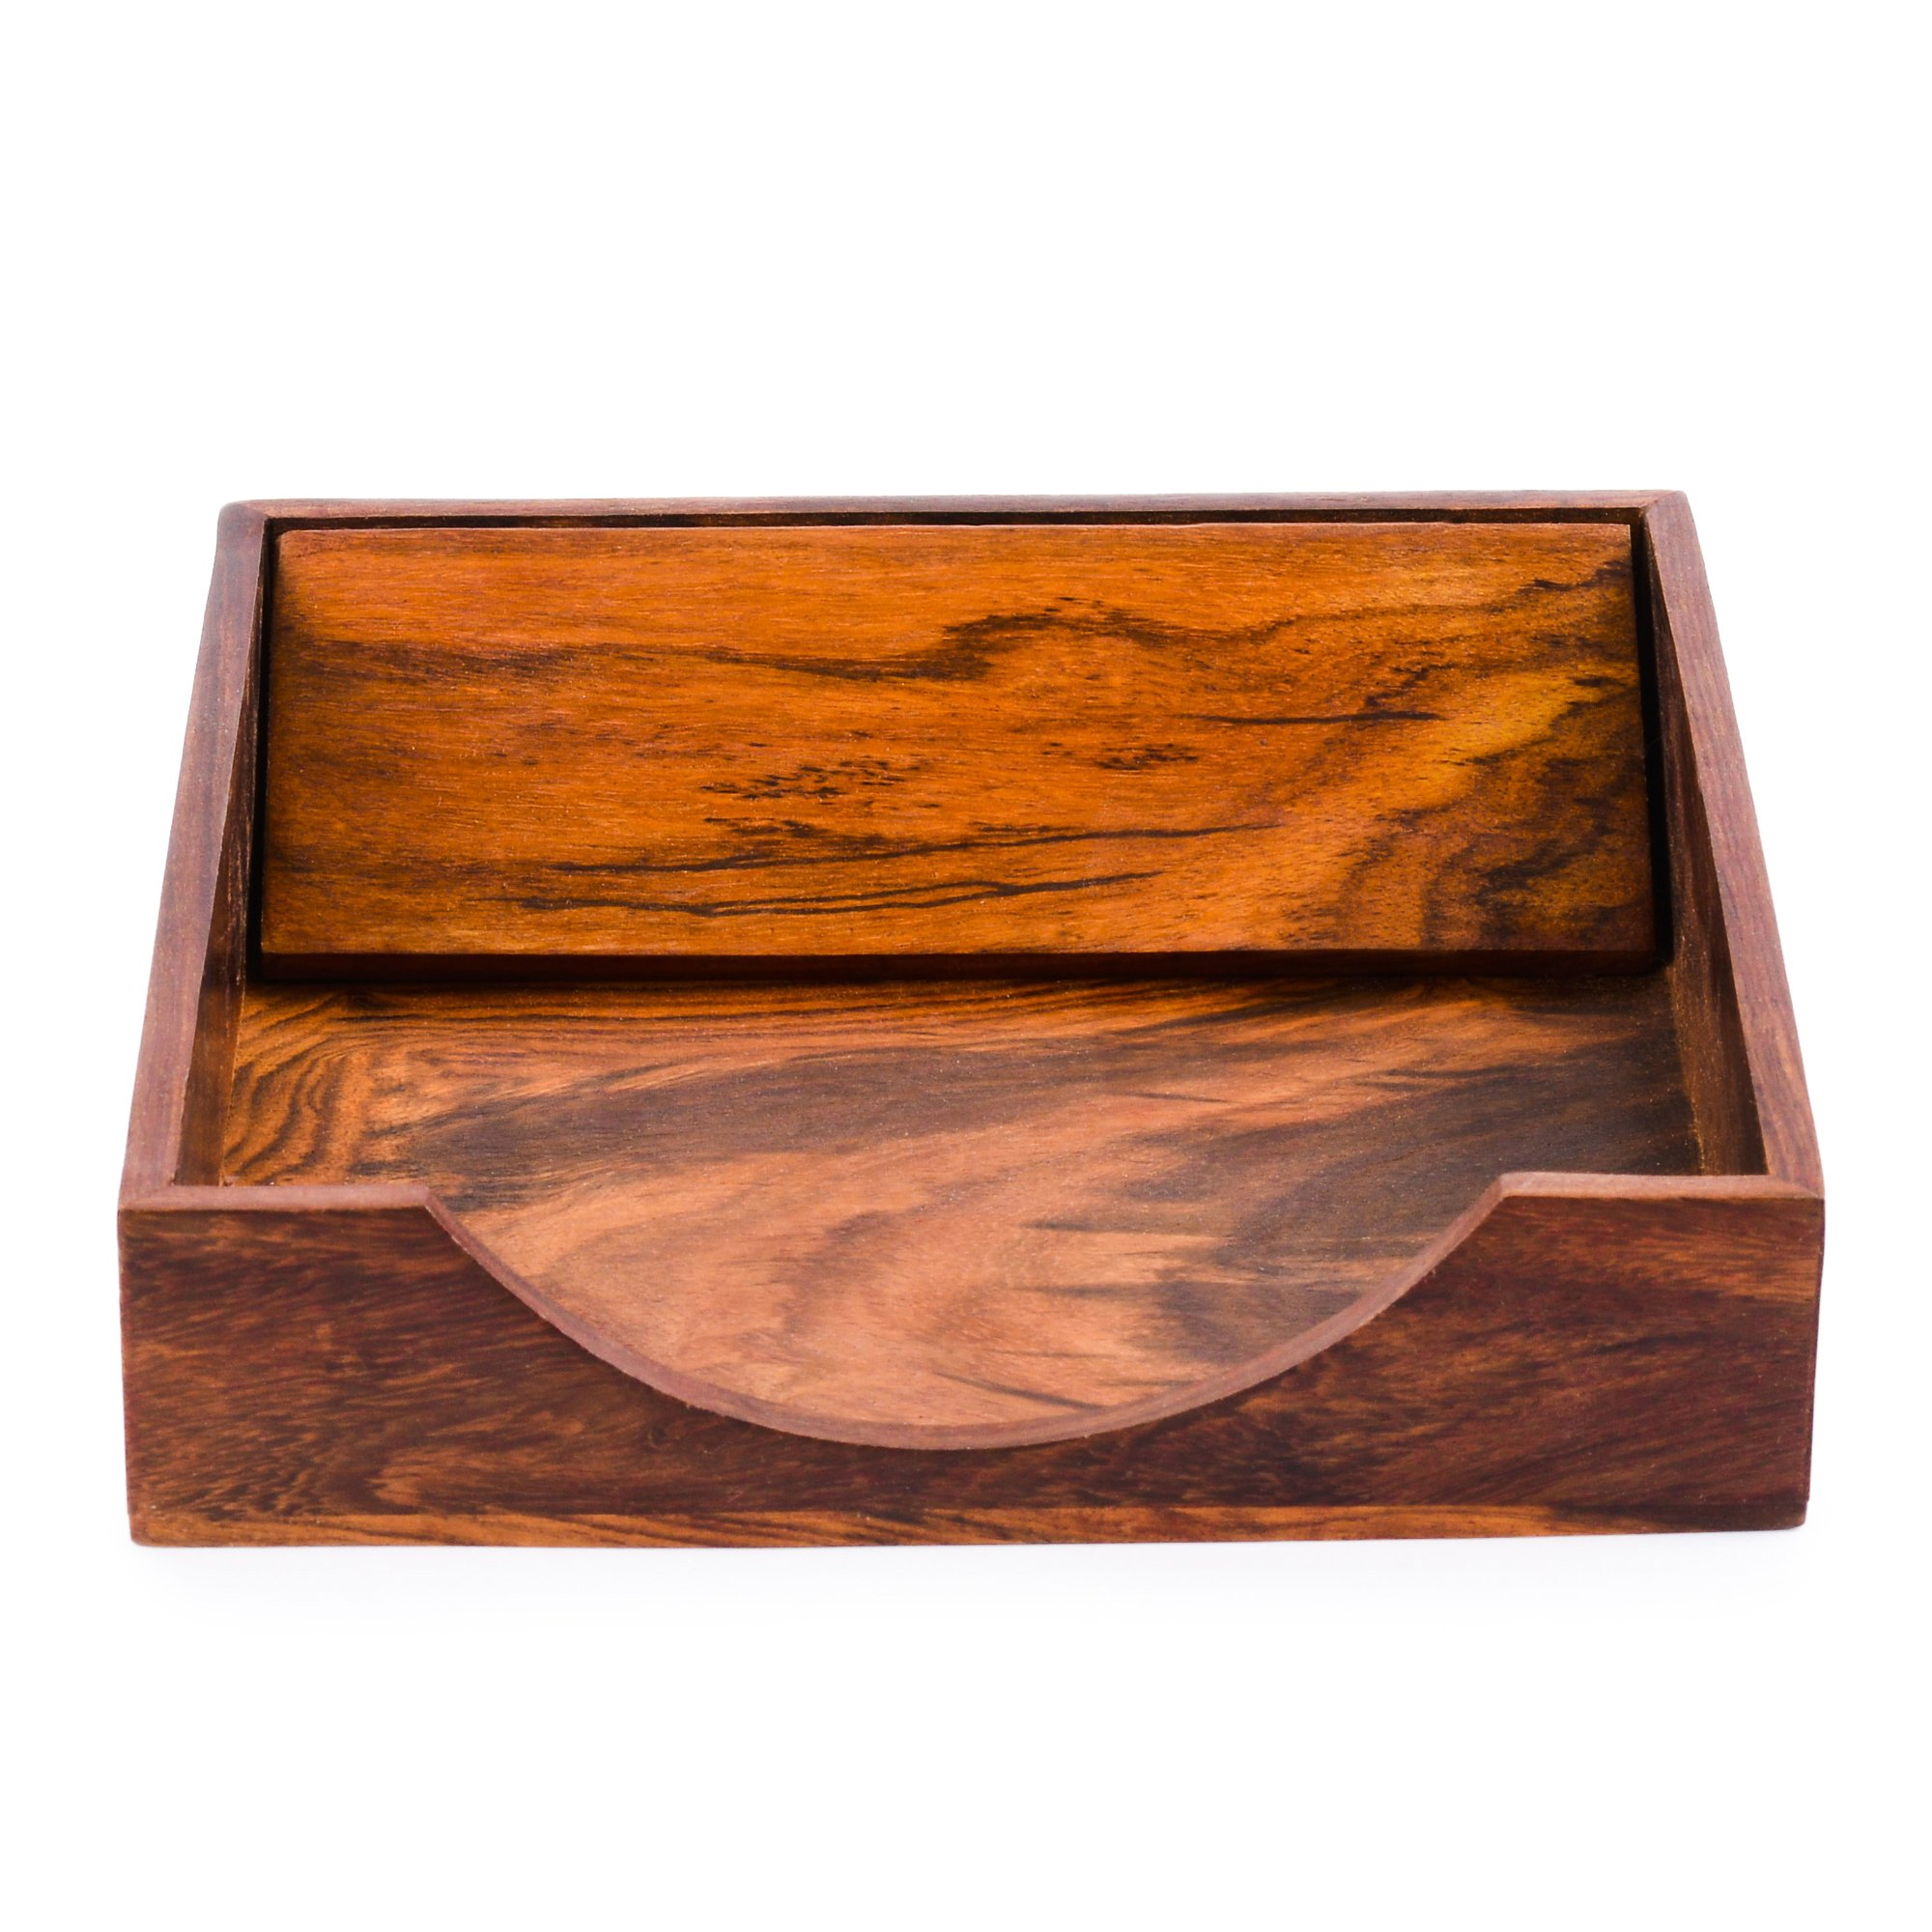 Rusticity Wood Paper Napkin Holder for Napkin and Tissues - Sleek Design | Handmade | (7x7 in) by Rusticity (Image #2)